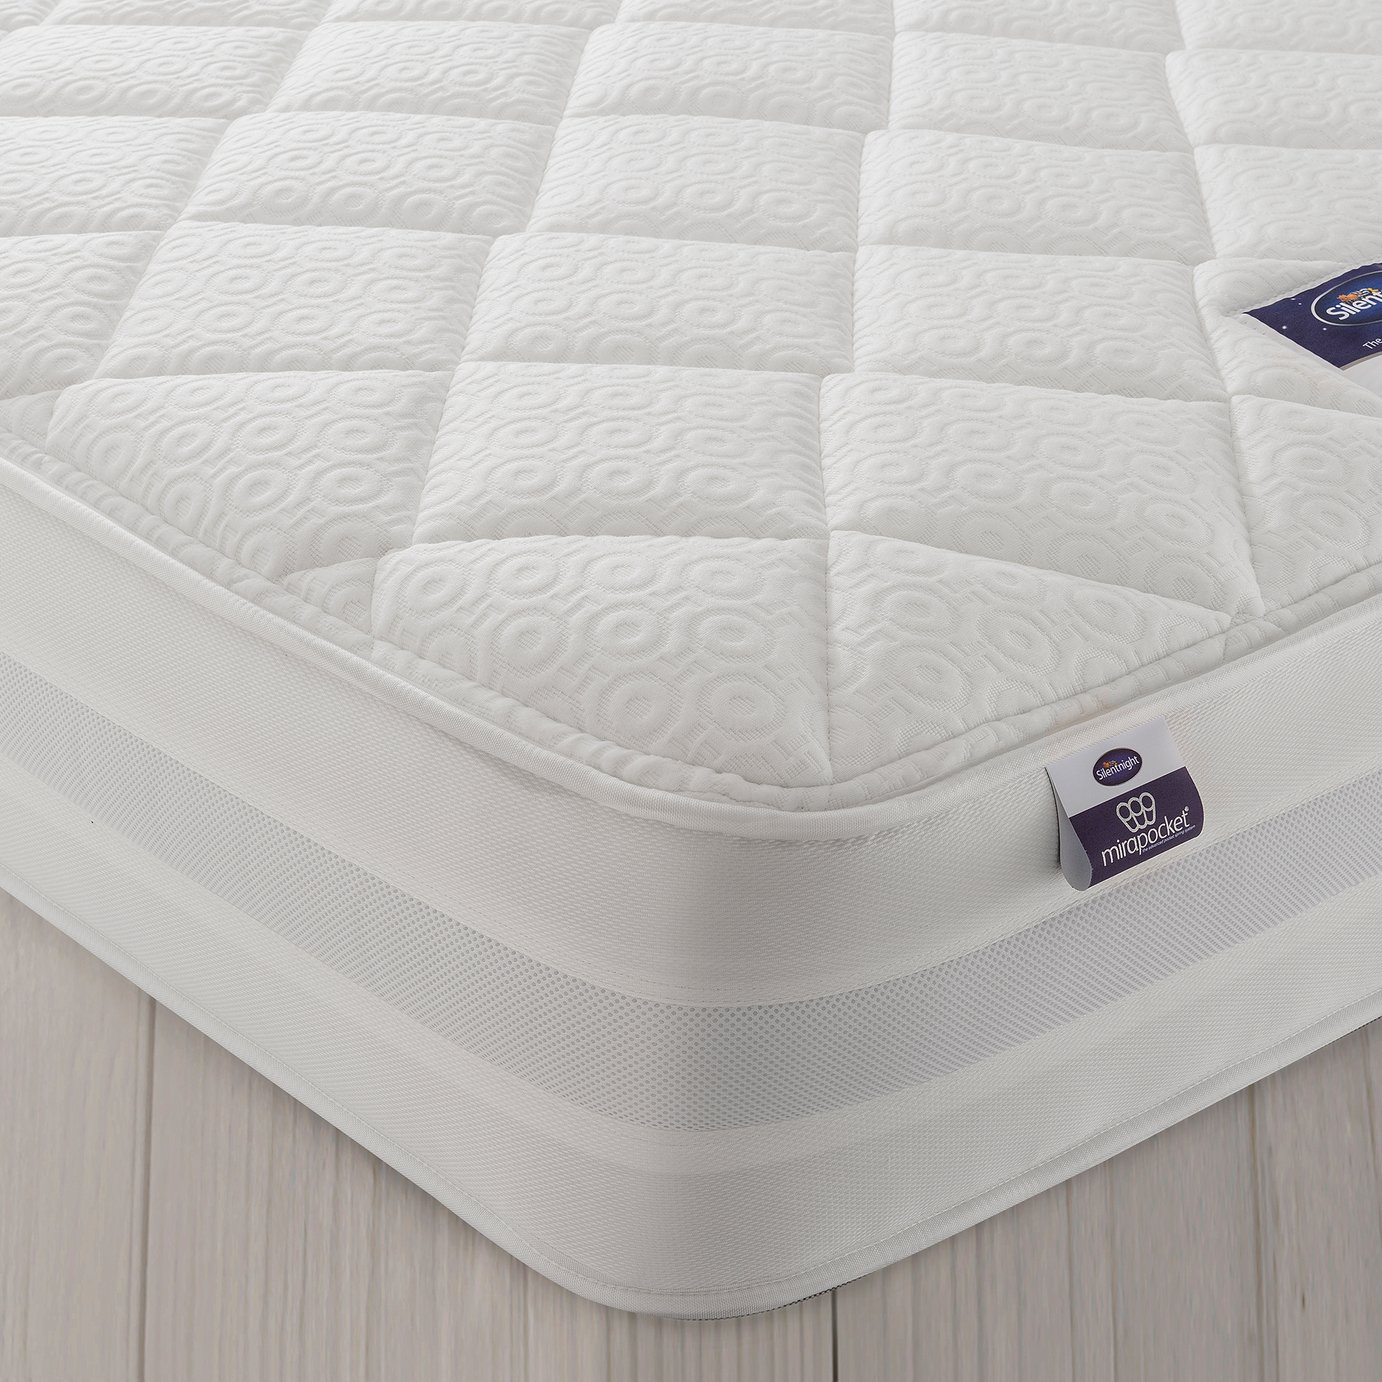 Silentnight Knightly 2000 Pocket Luxury Kingsize Mattress